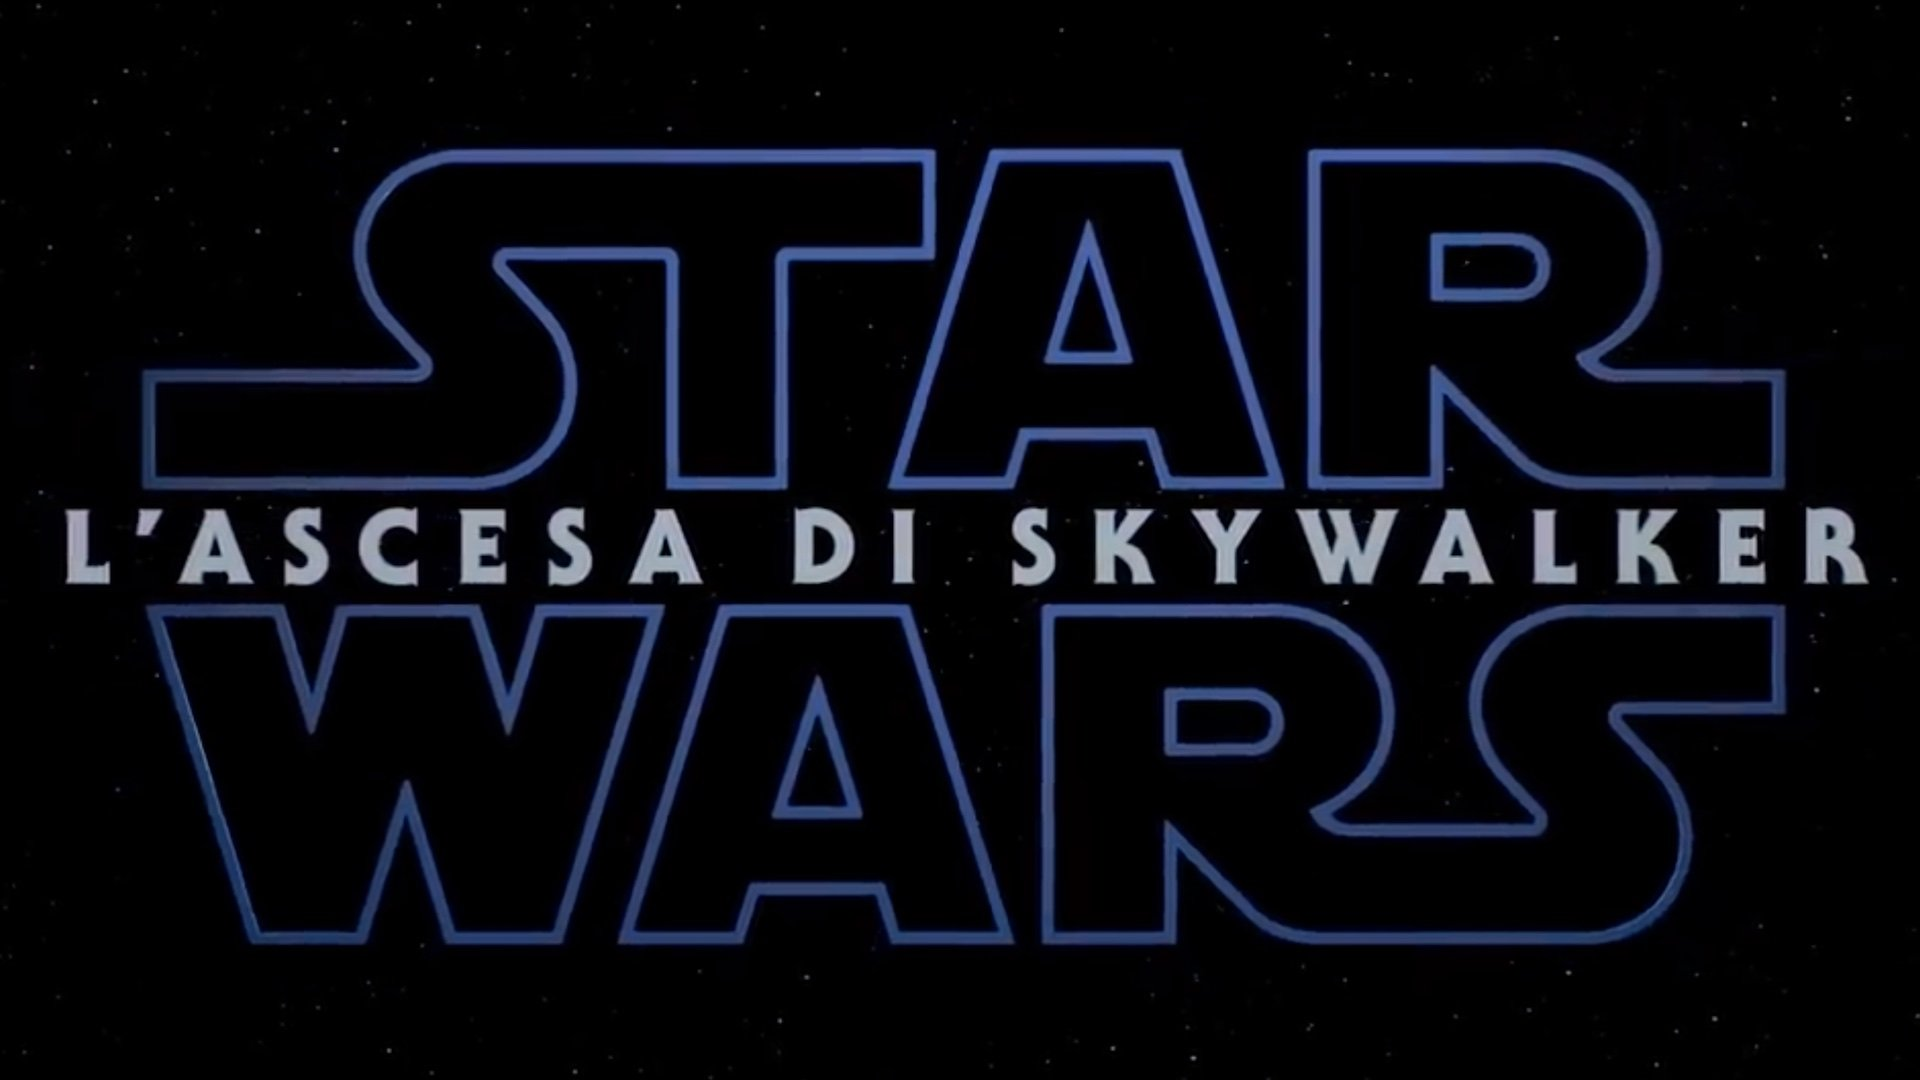 Star Wars: L'ascesa di Skywalker: titolo e il trailer in italiano di Episodio IX